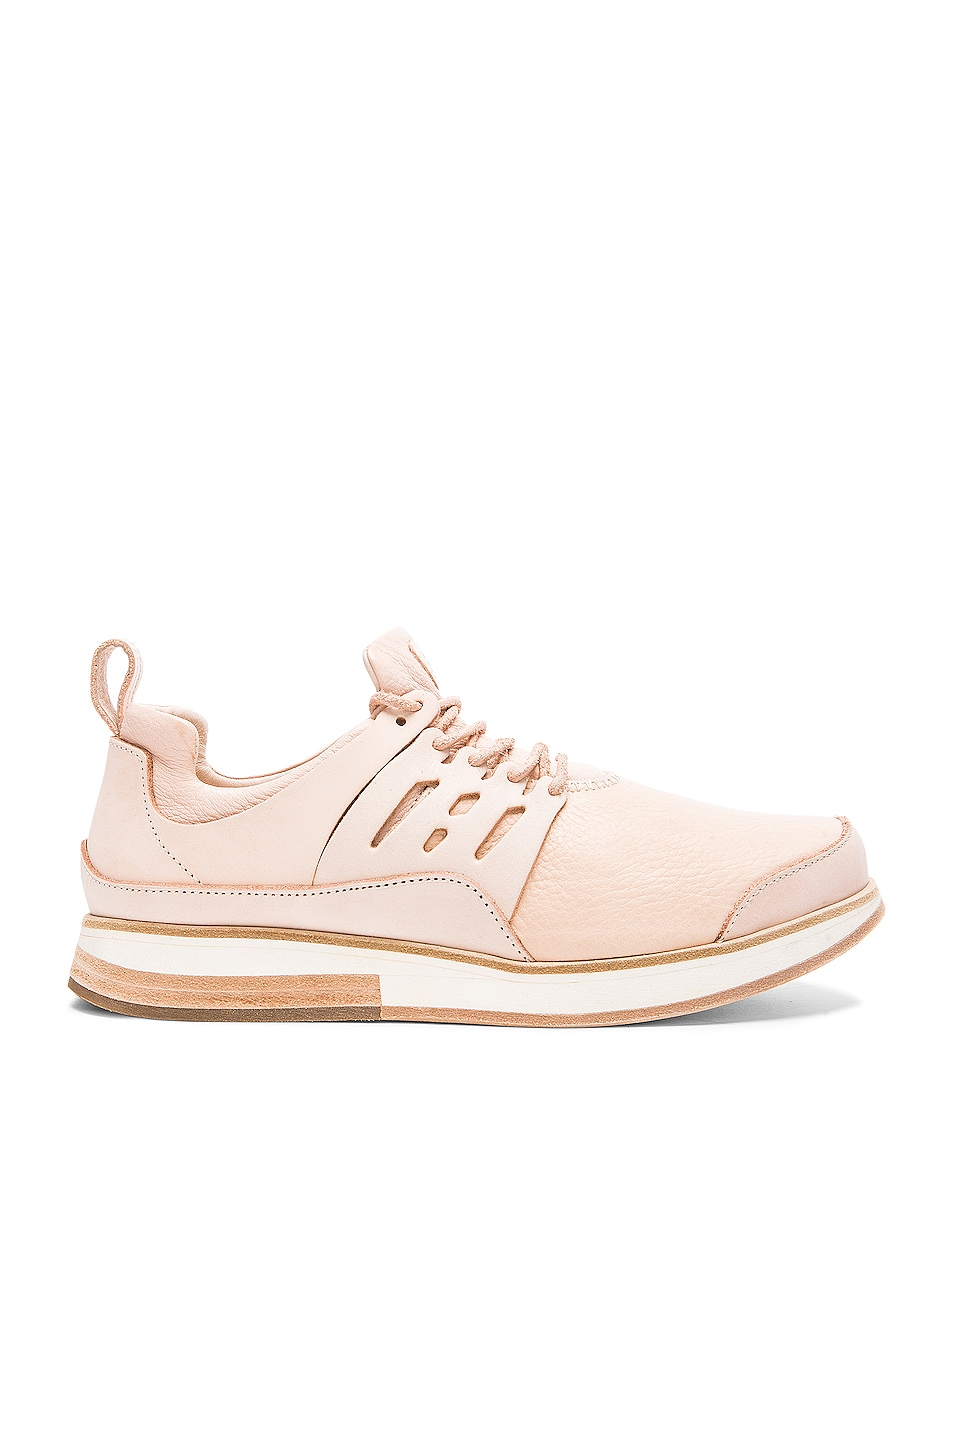 Sale Inexpensive Cheap Sale Marketable MI-P12 lace-up sneakers - Nude & Neutrals HENDER SCHEME Buy Cheap Discount Wide Range Of For Sale Vrsj1Y3